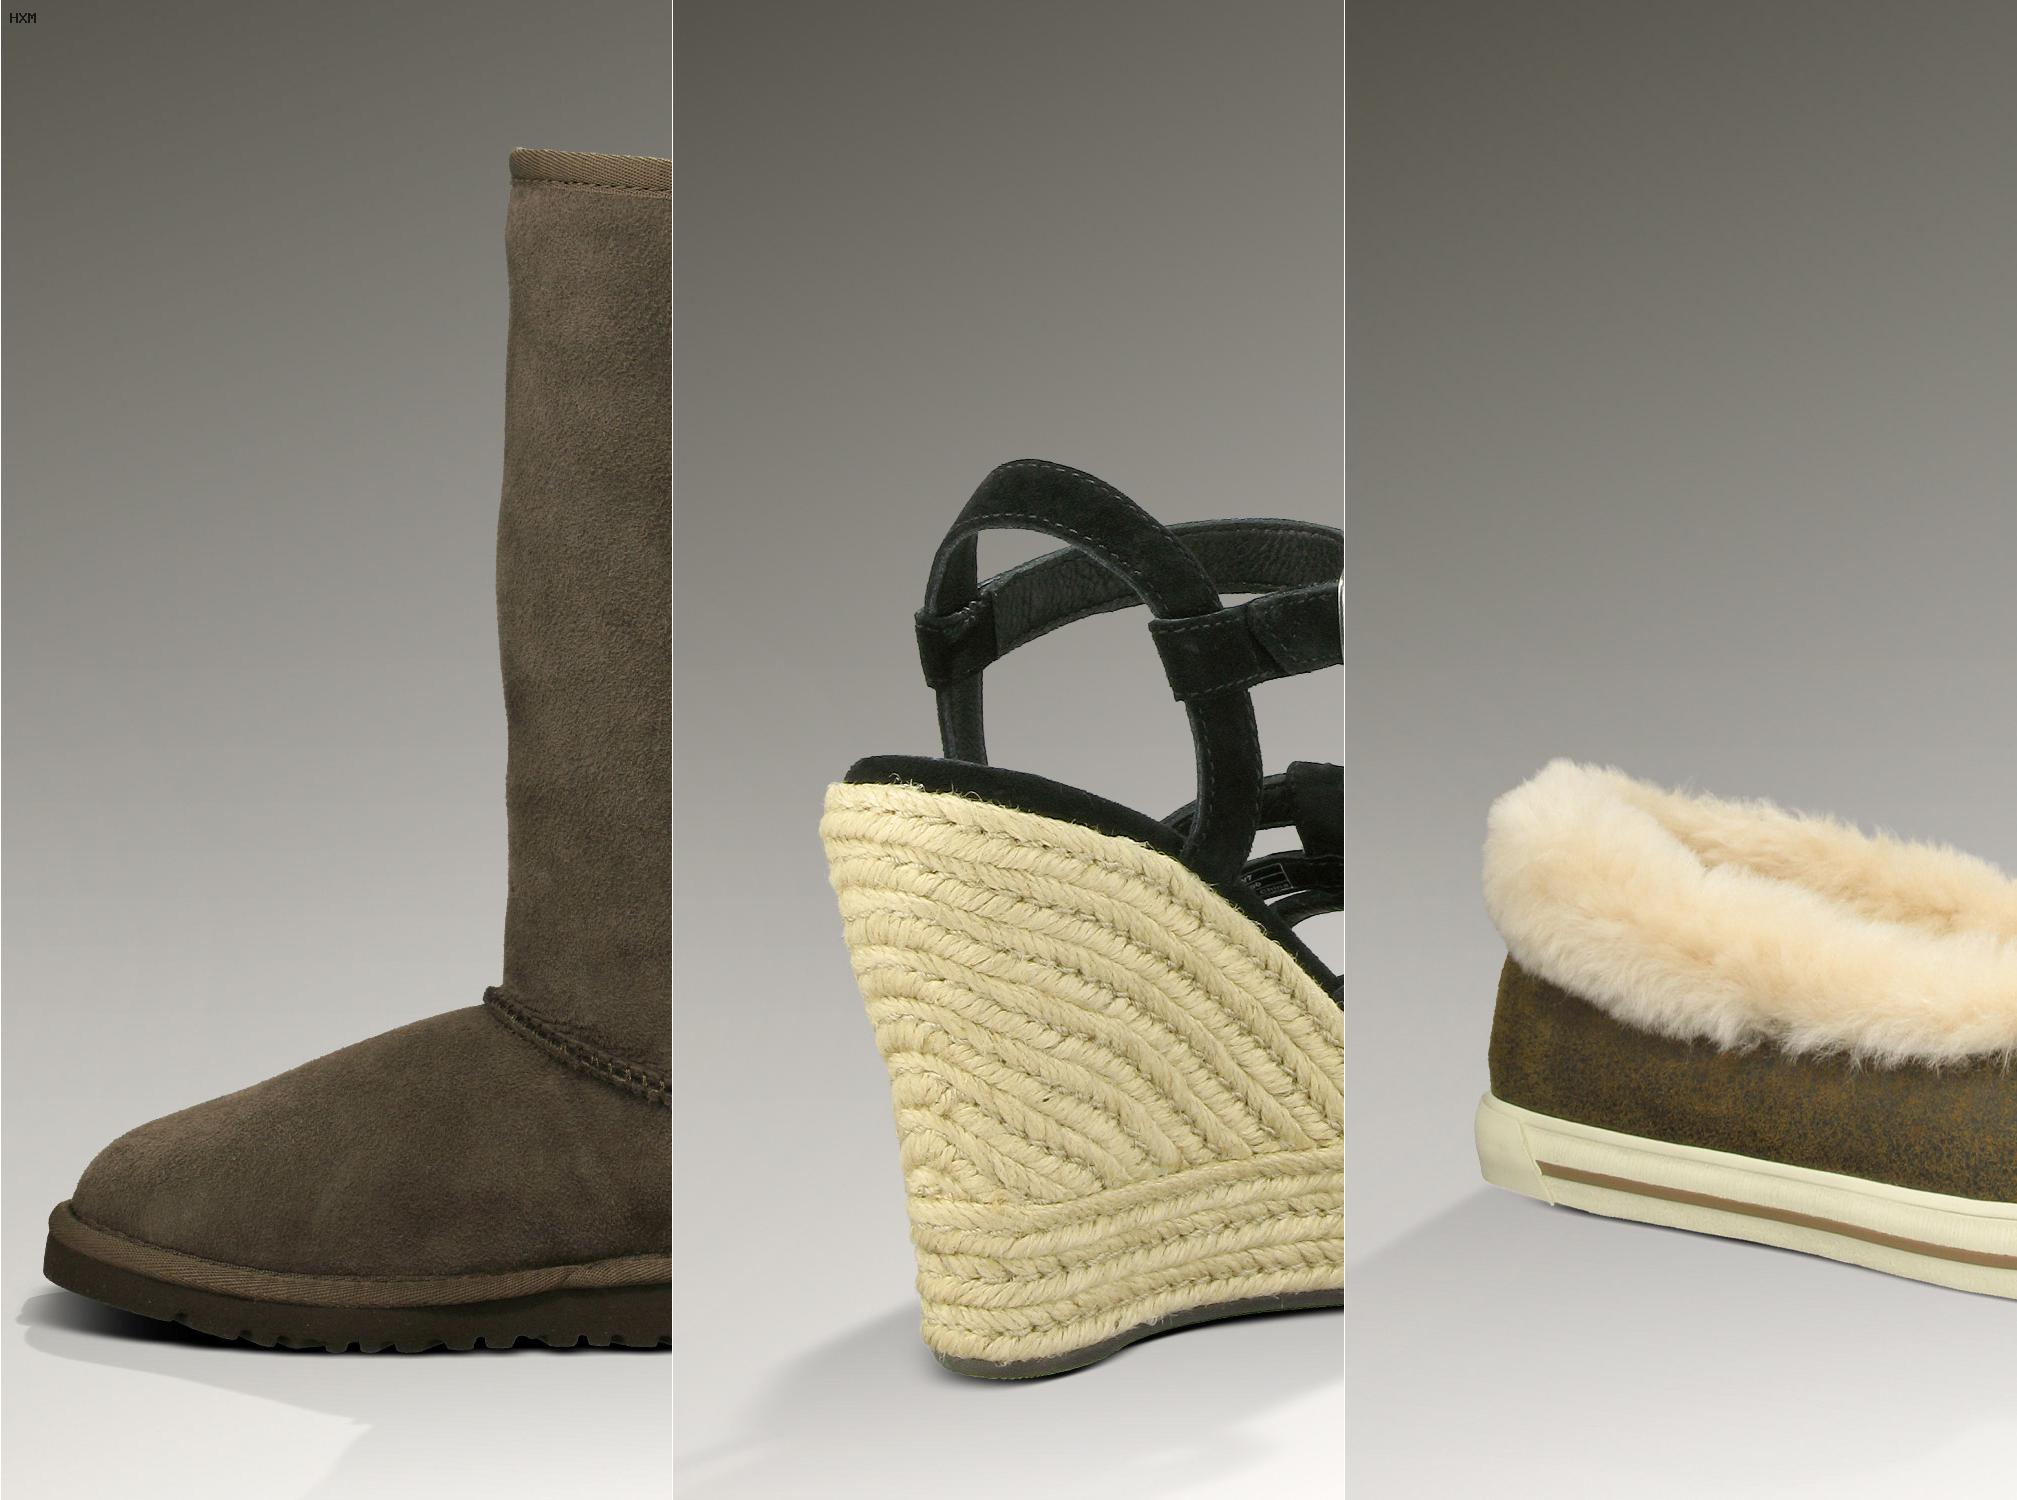 ugg boots china suppliers